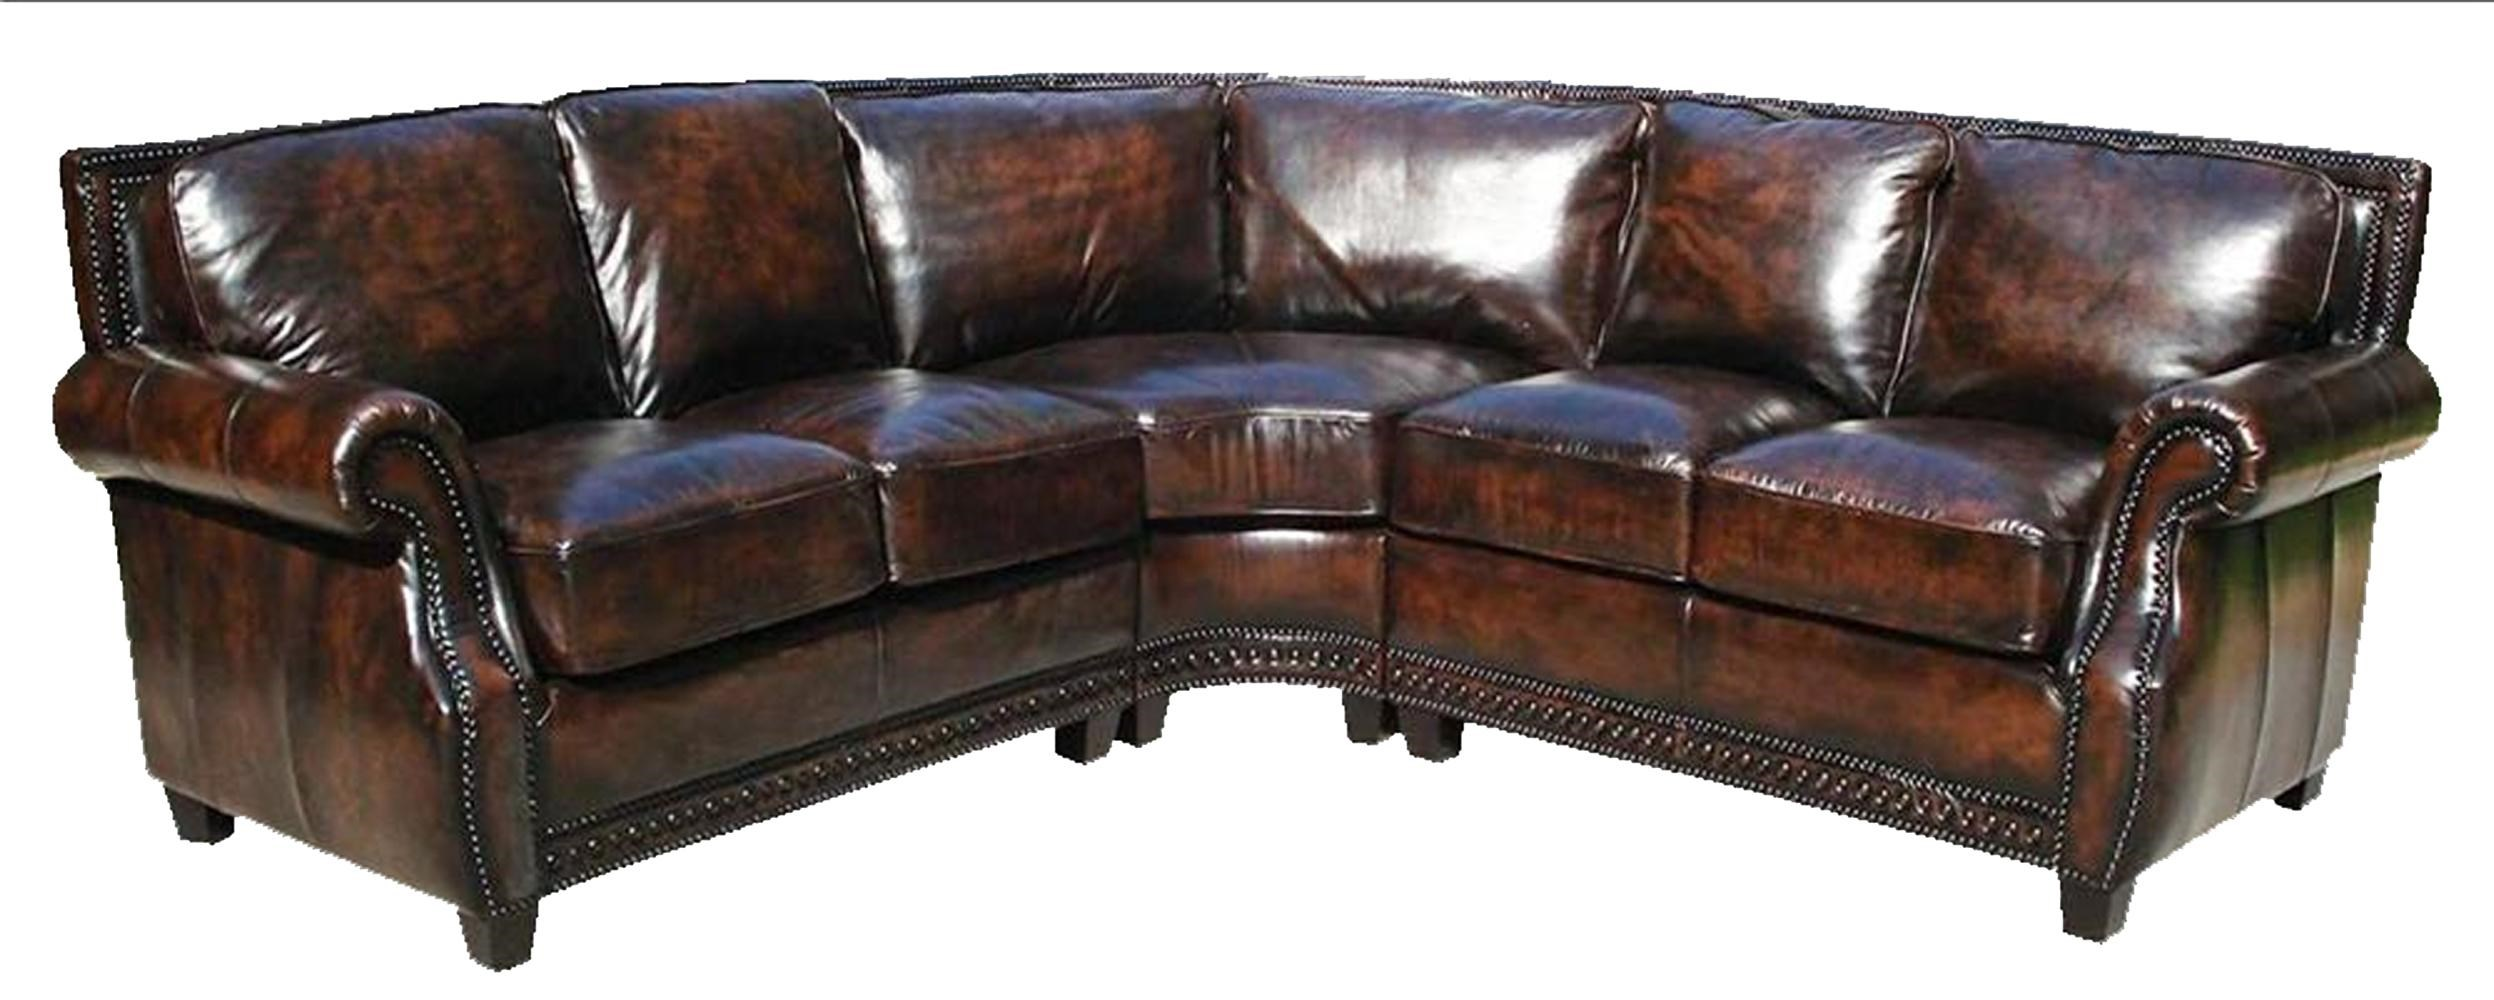 sectional sofa dallas fort worth oxblood leather chesterfield gramercy park designs 1170 with wedge